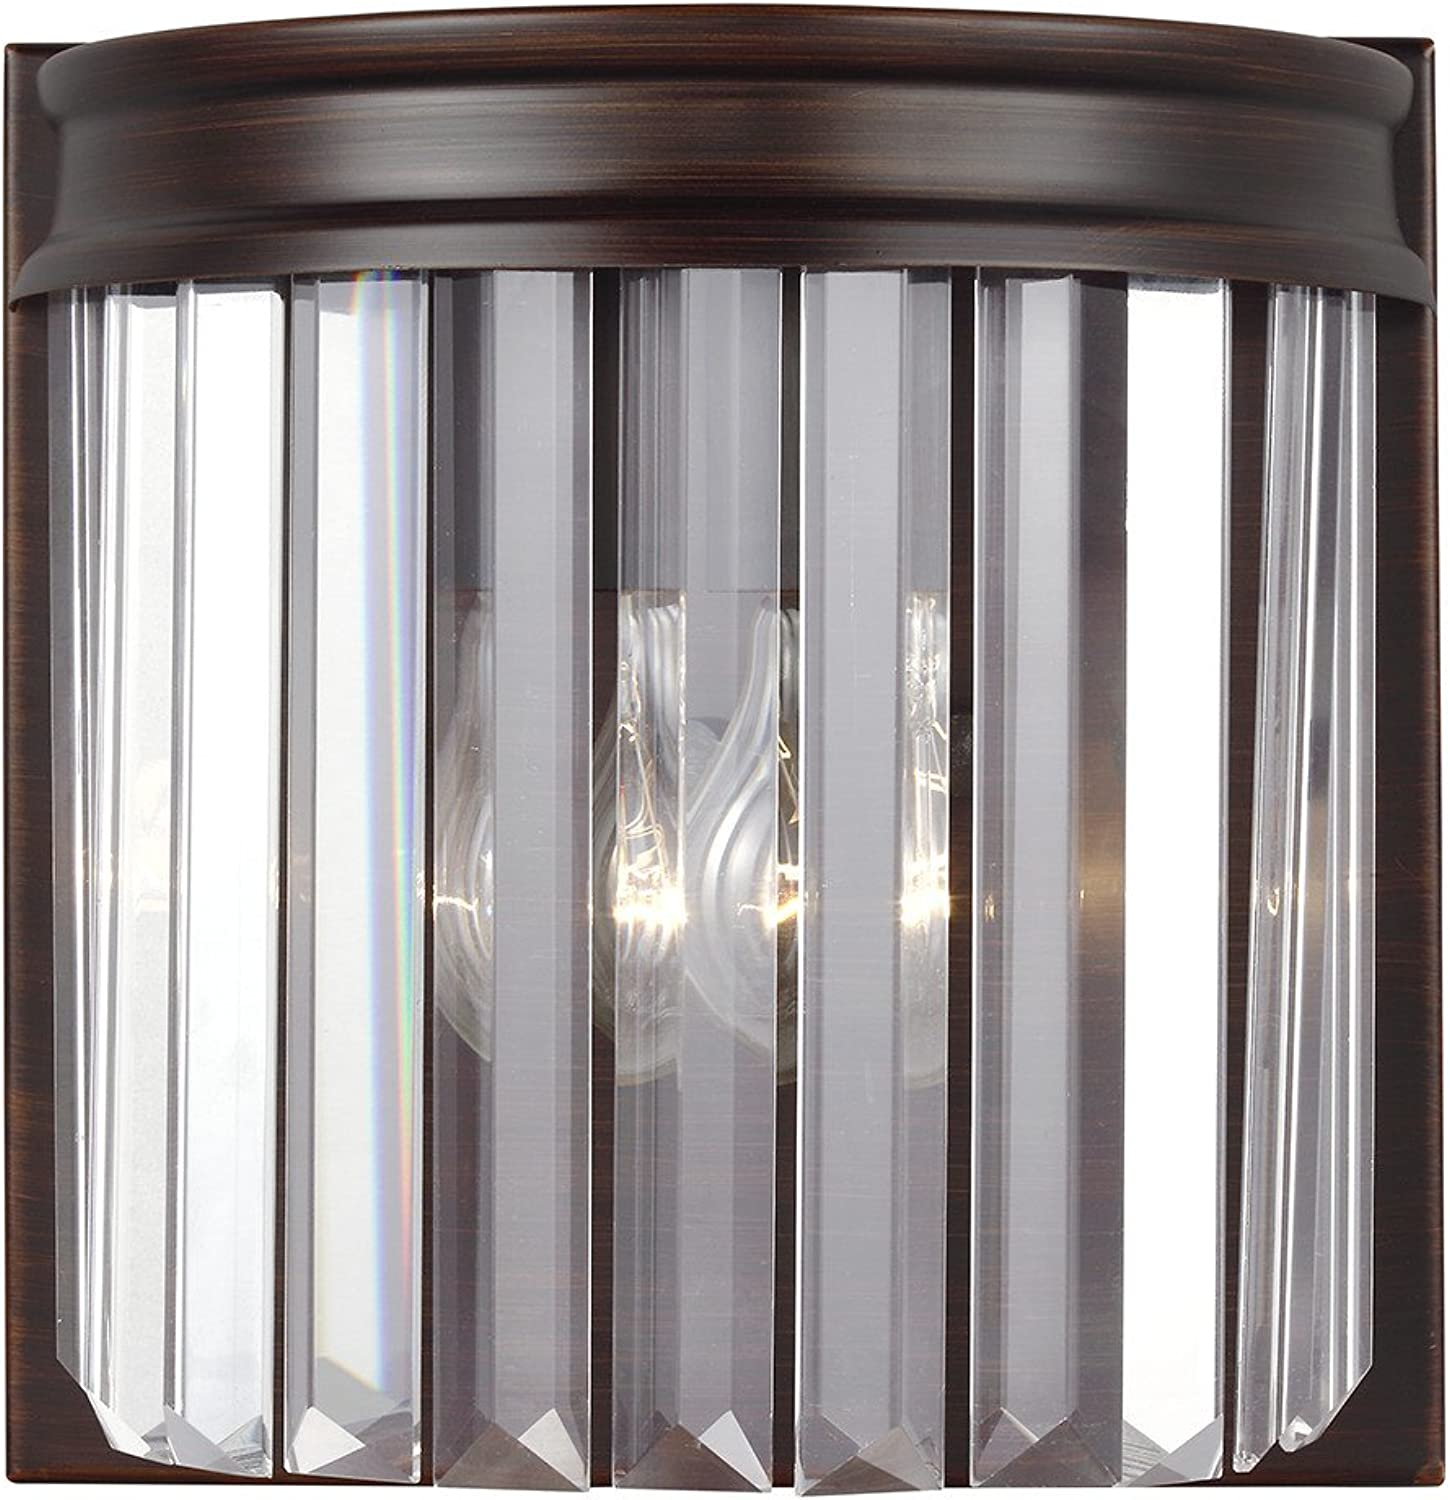 Sea Gull Lighting 4414001-710 Carondelet One-Light Bath or Wall Sconce with Clear Beveled Glass Panels, Burnt Sienna Finish